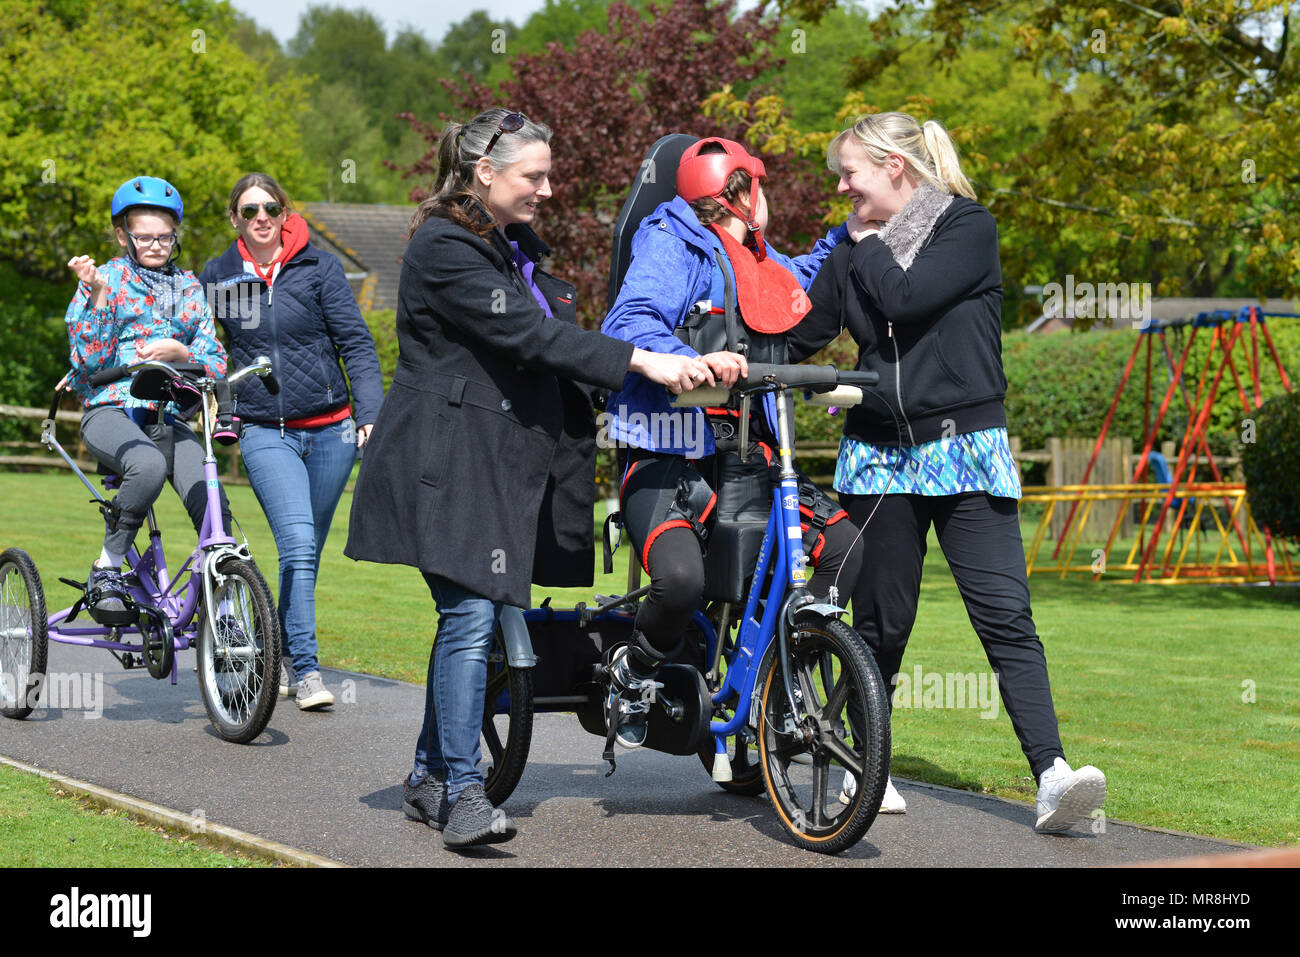 Carers with disabled children at Chailey Heritage Foundation, East Sussex UK - Stock Image